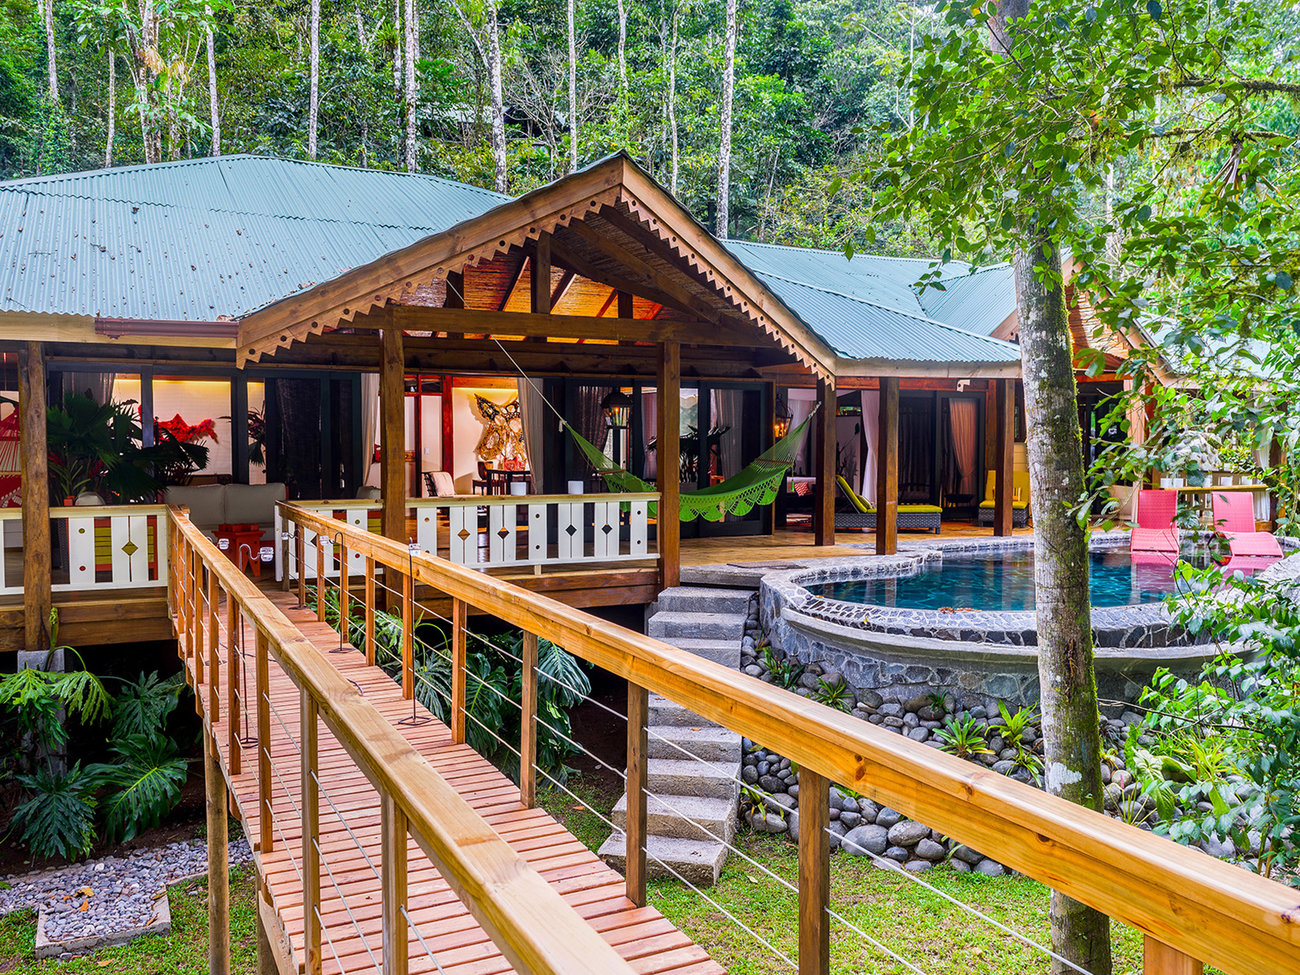 Pacuare Lodge Hotel in Costa Rica